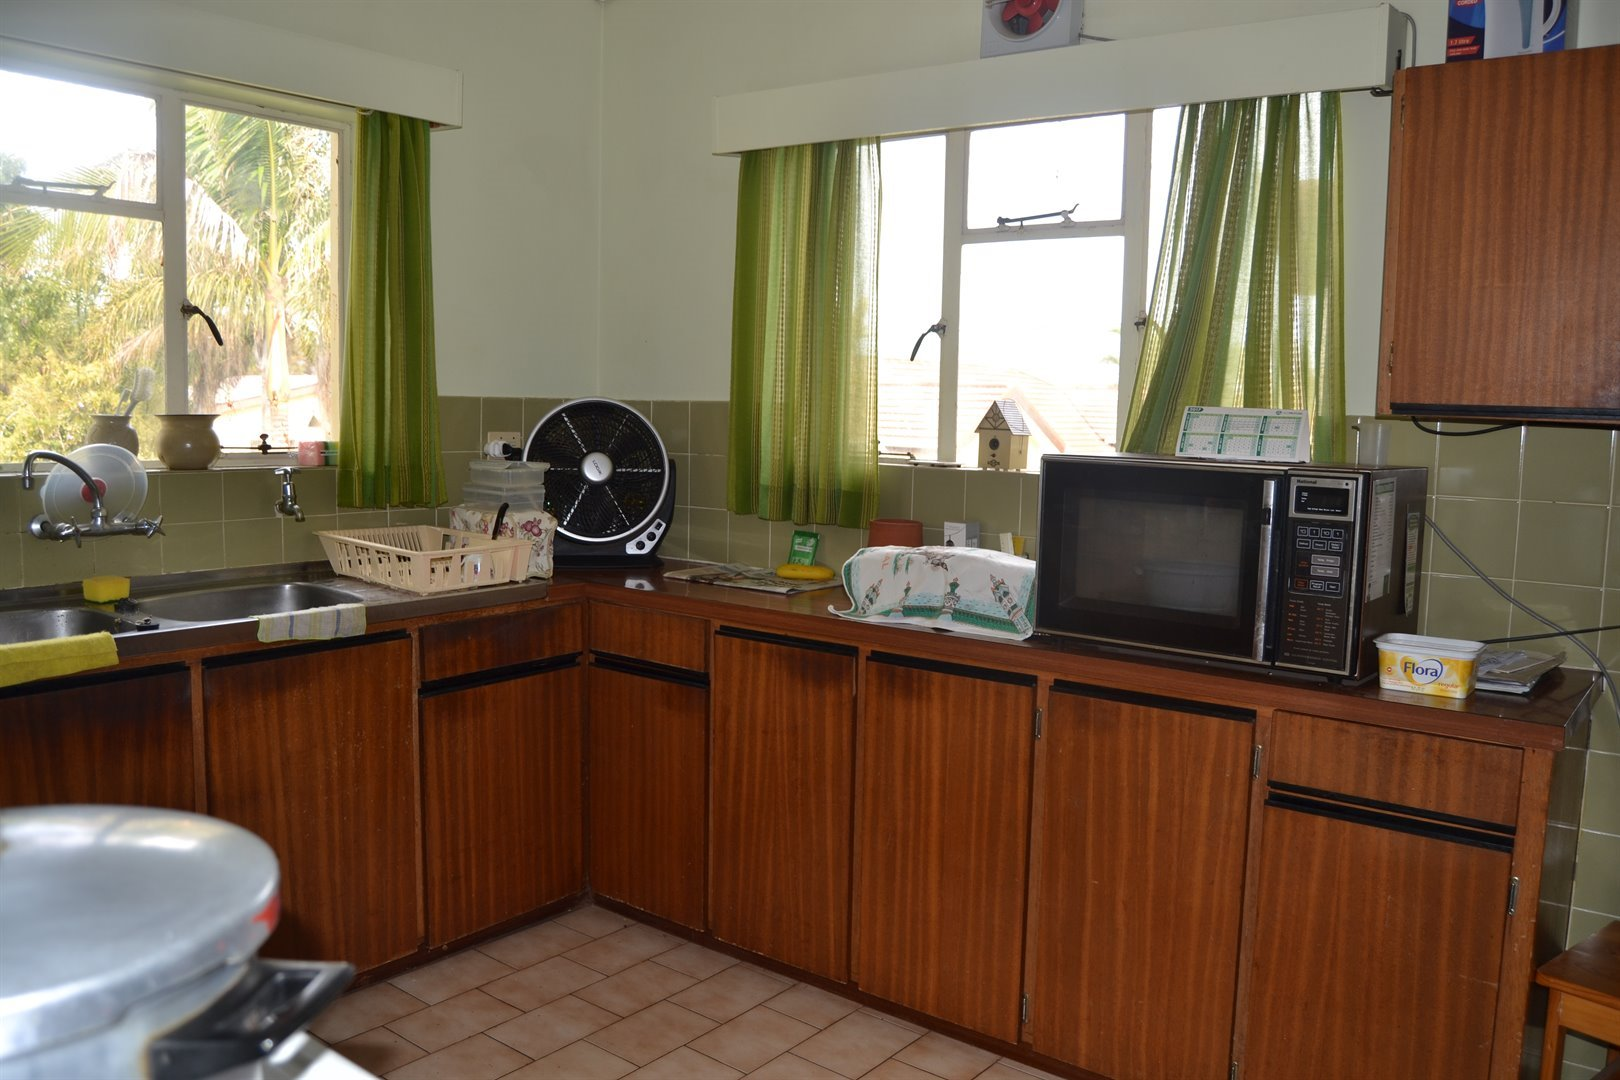 Paarl Central East property for sale. Ref No: 13530396. Picture no 5